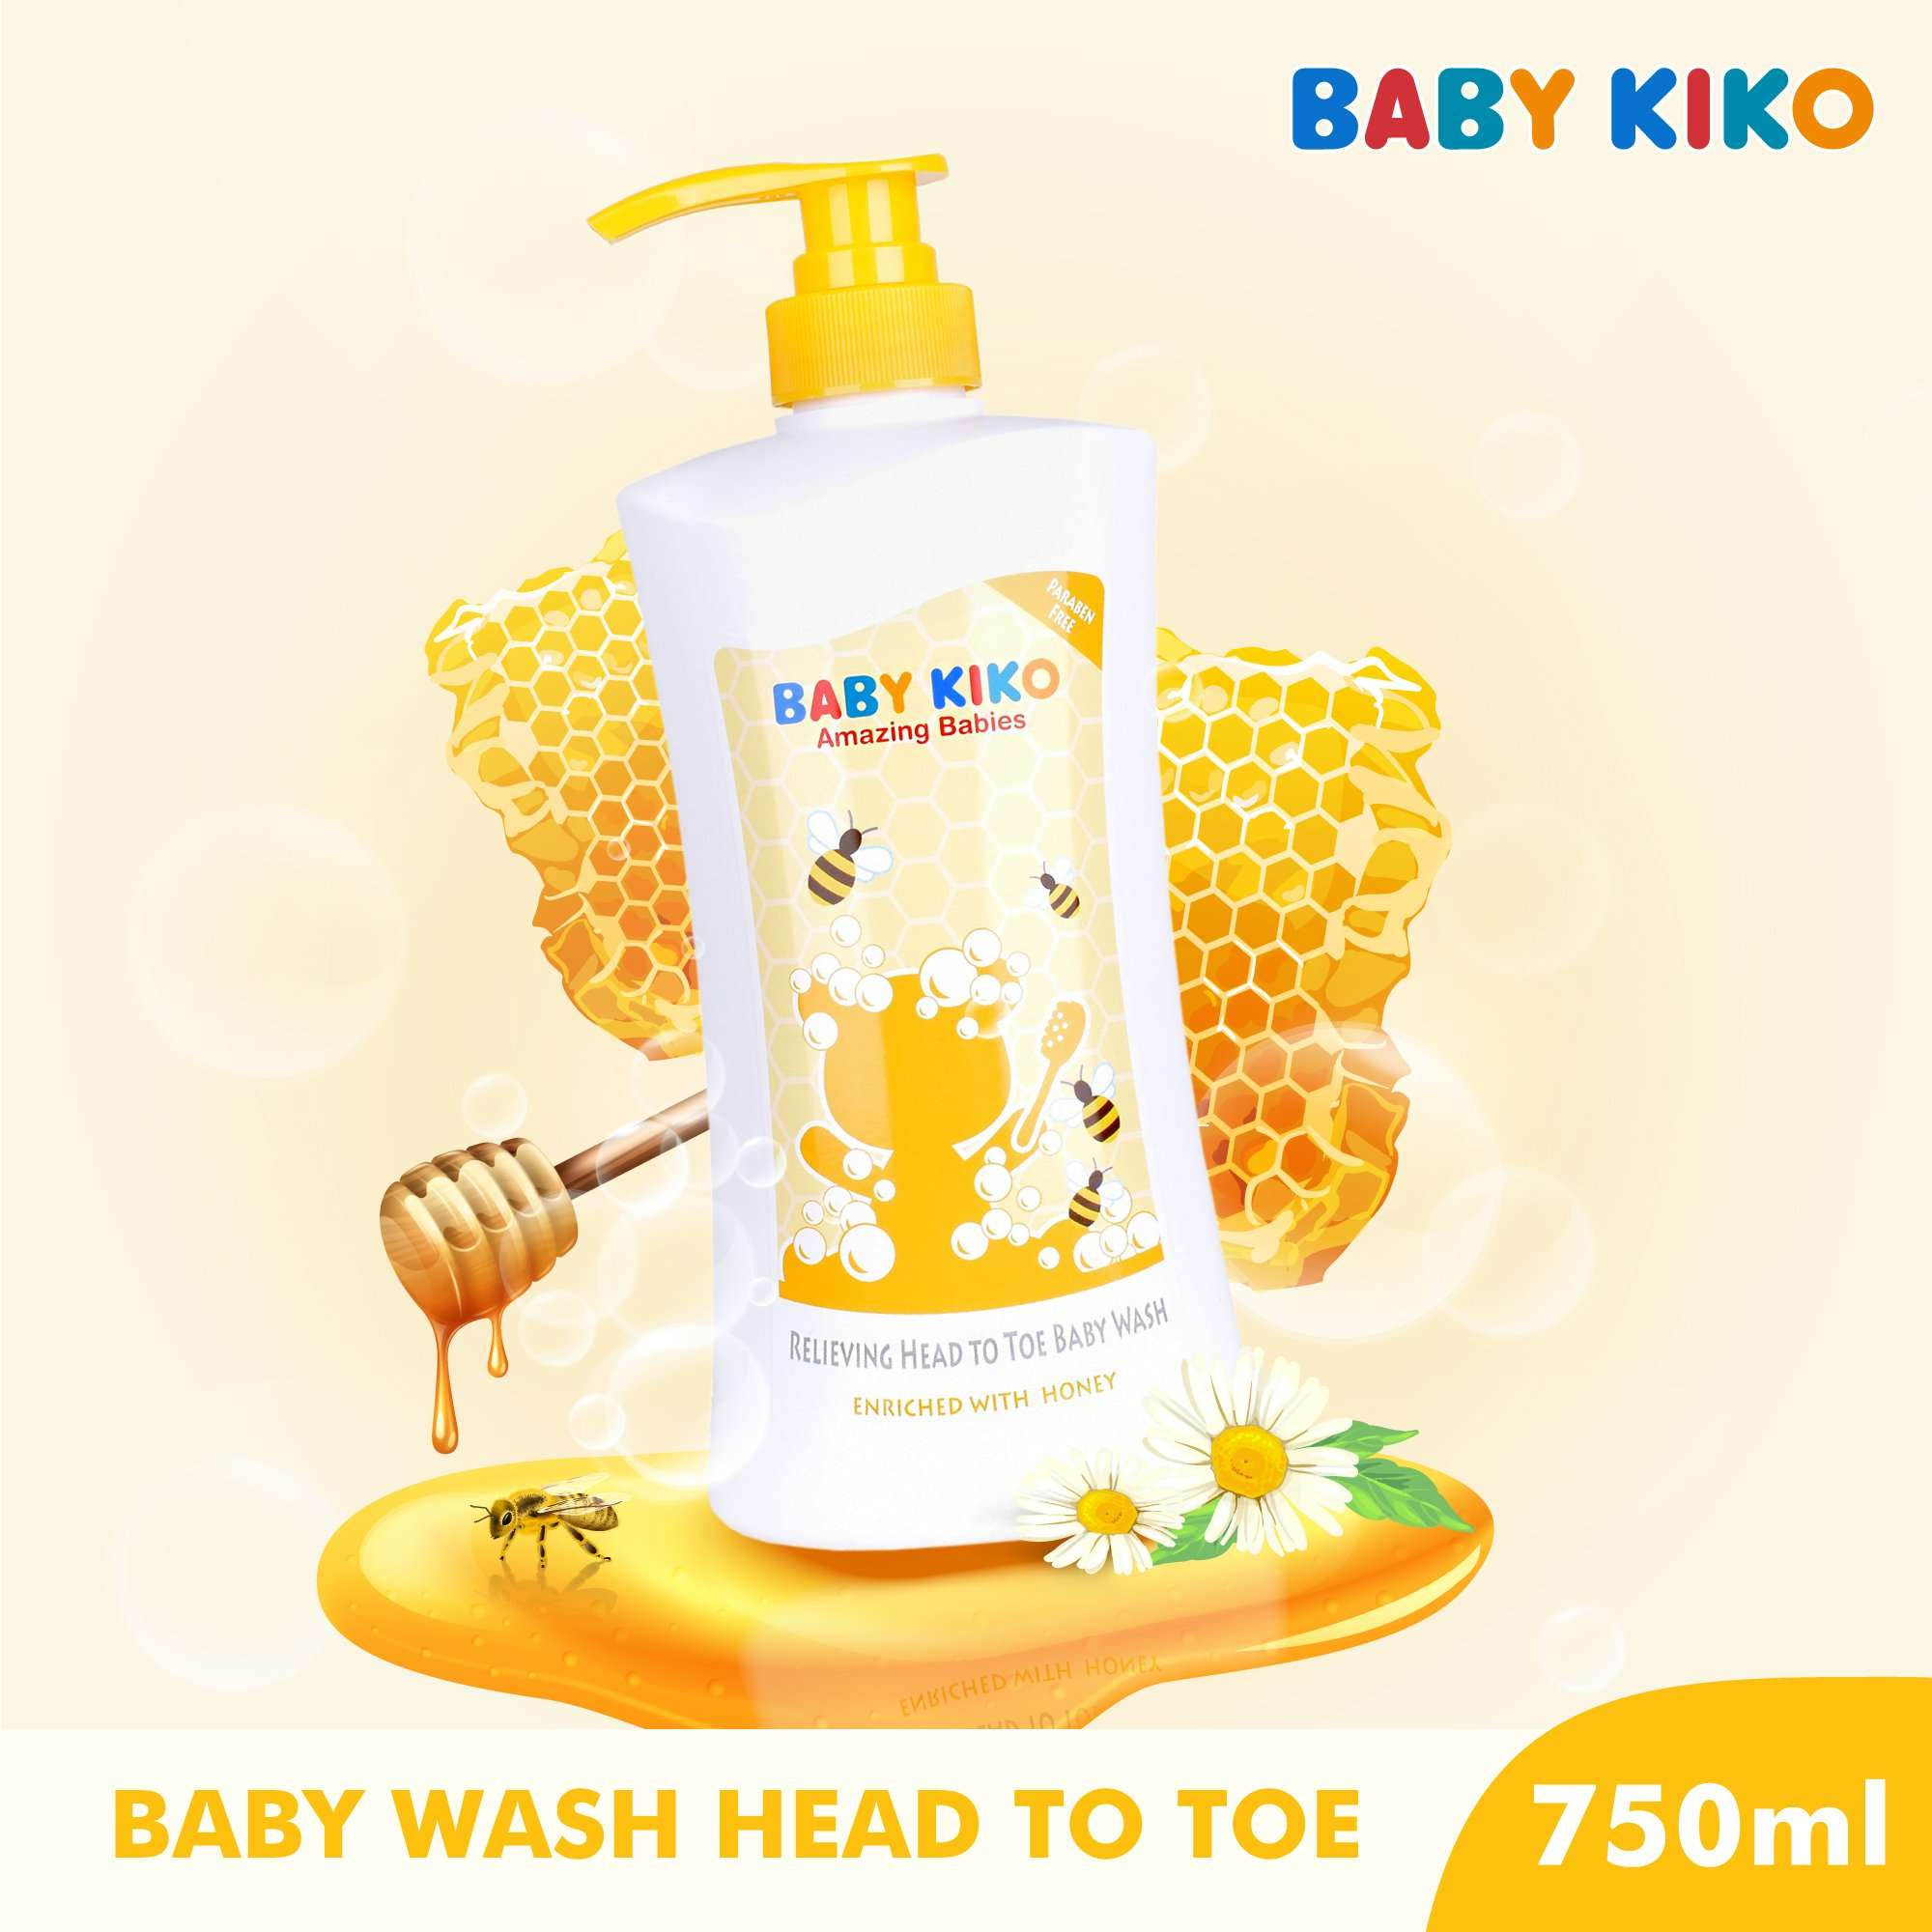 Baby KIKO Relieving Head To Toe Body Wash With Honey Extract - 750ml 3652-001 : Buy Baby KIKO online at CMG.MY